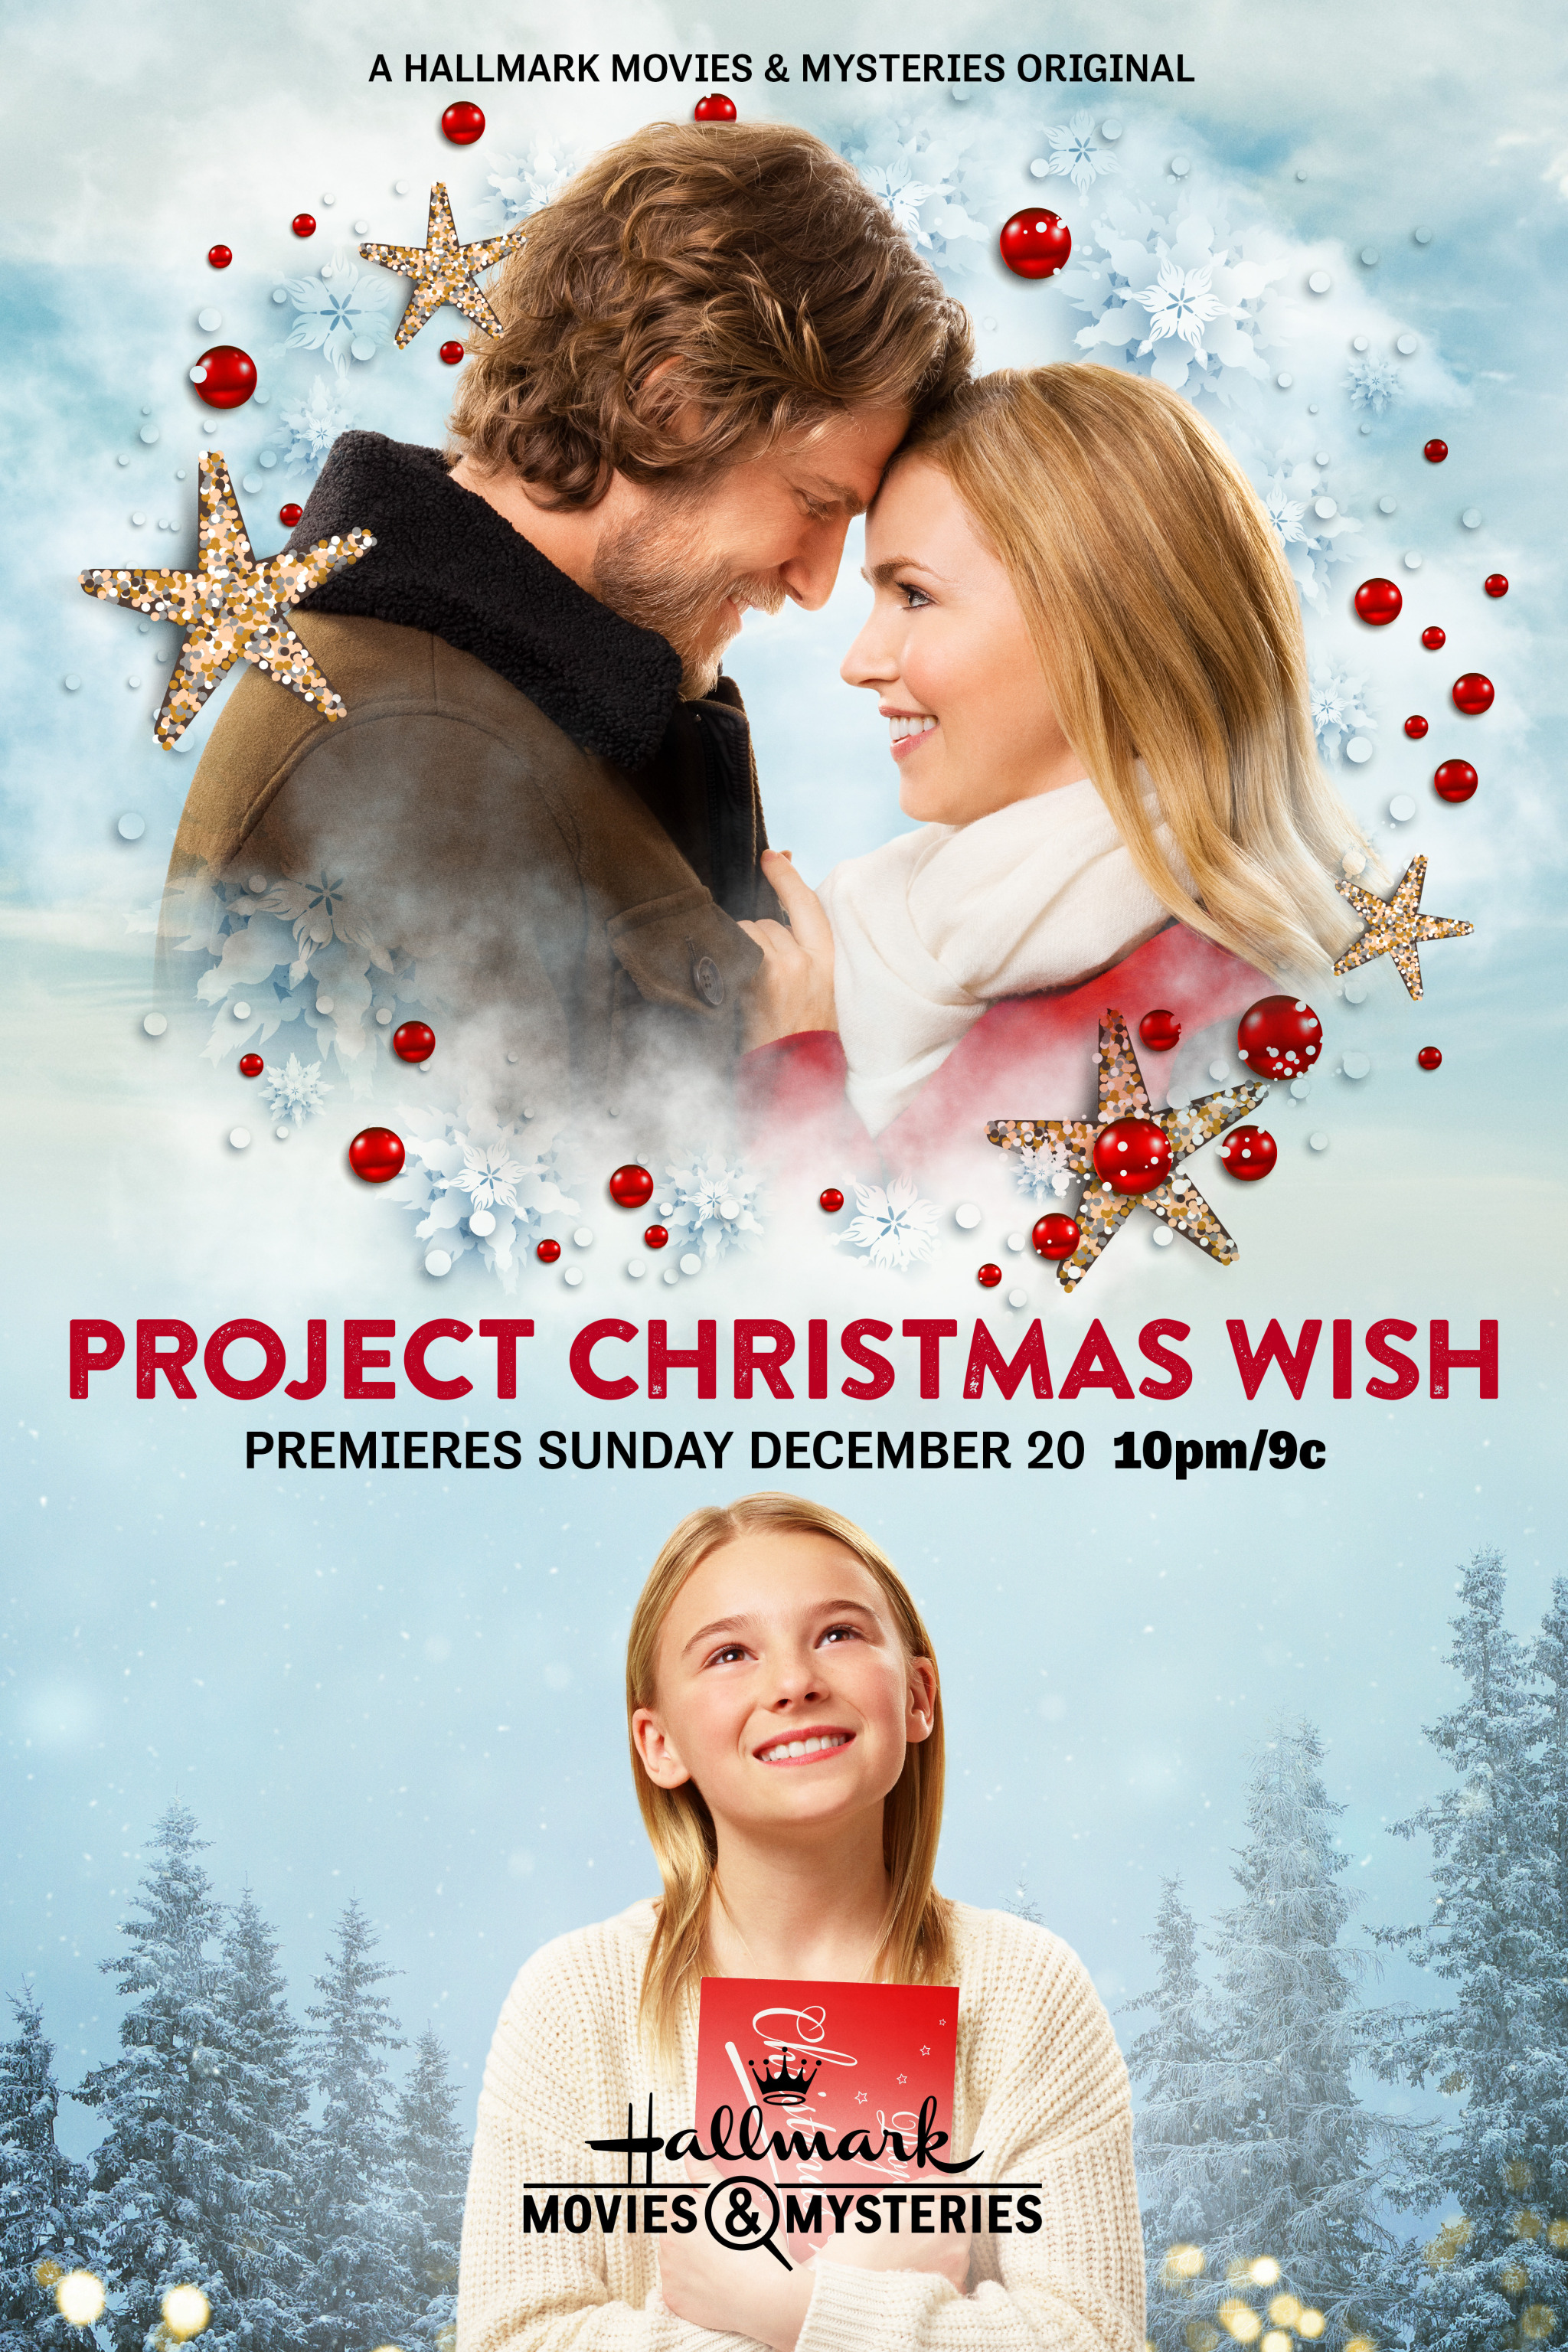 Project Christmas Wish hd on soap2day